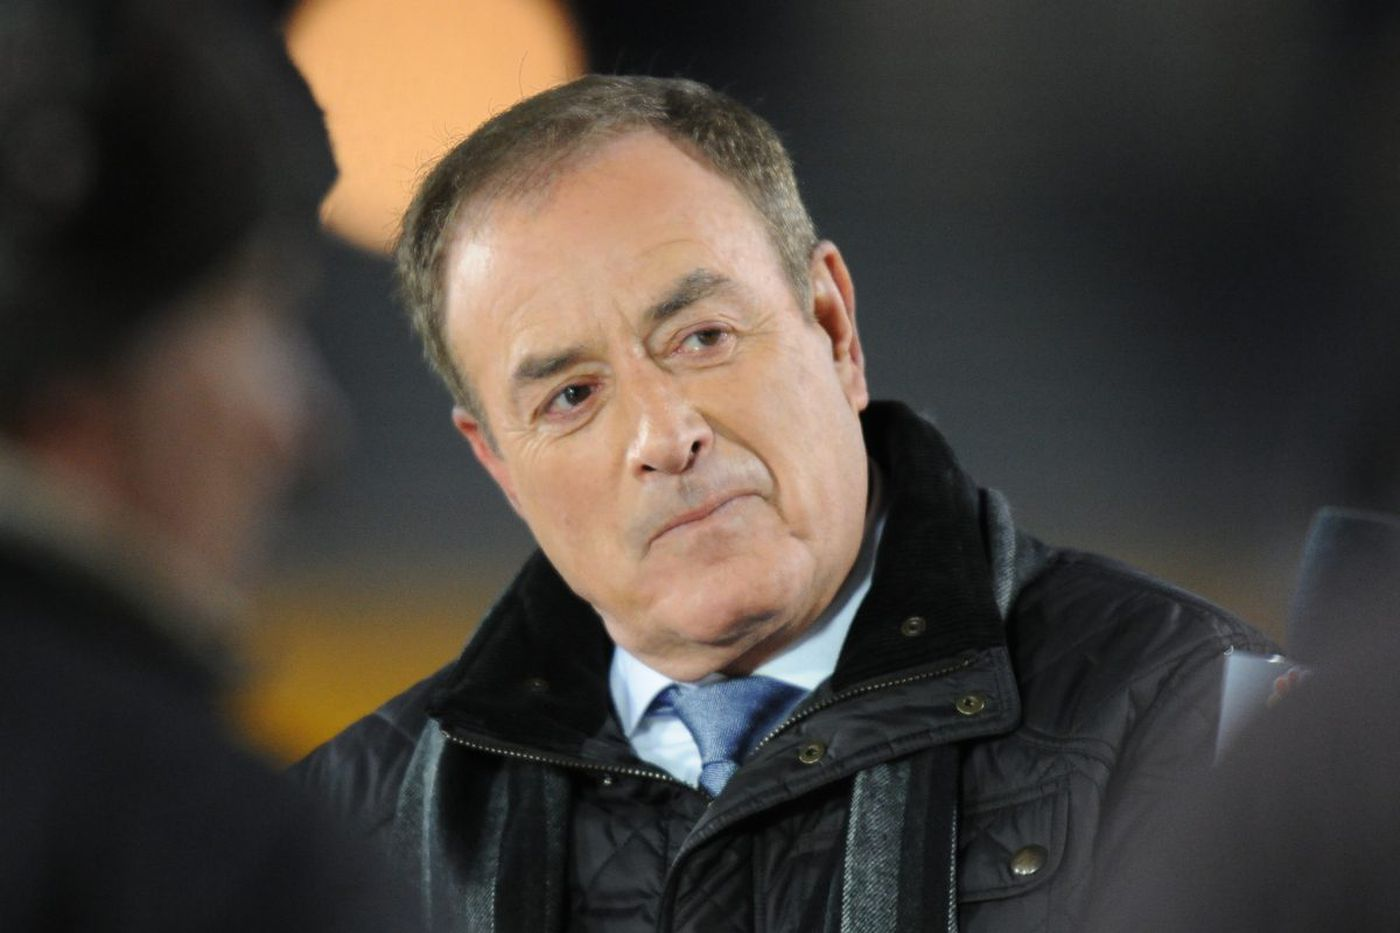 NBC's Al Michaels apologizes for comparing the Giants to Harvey Weinstein